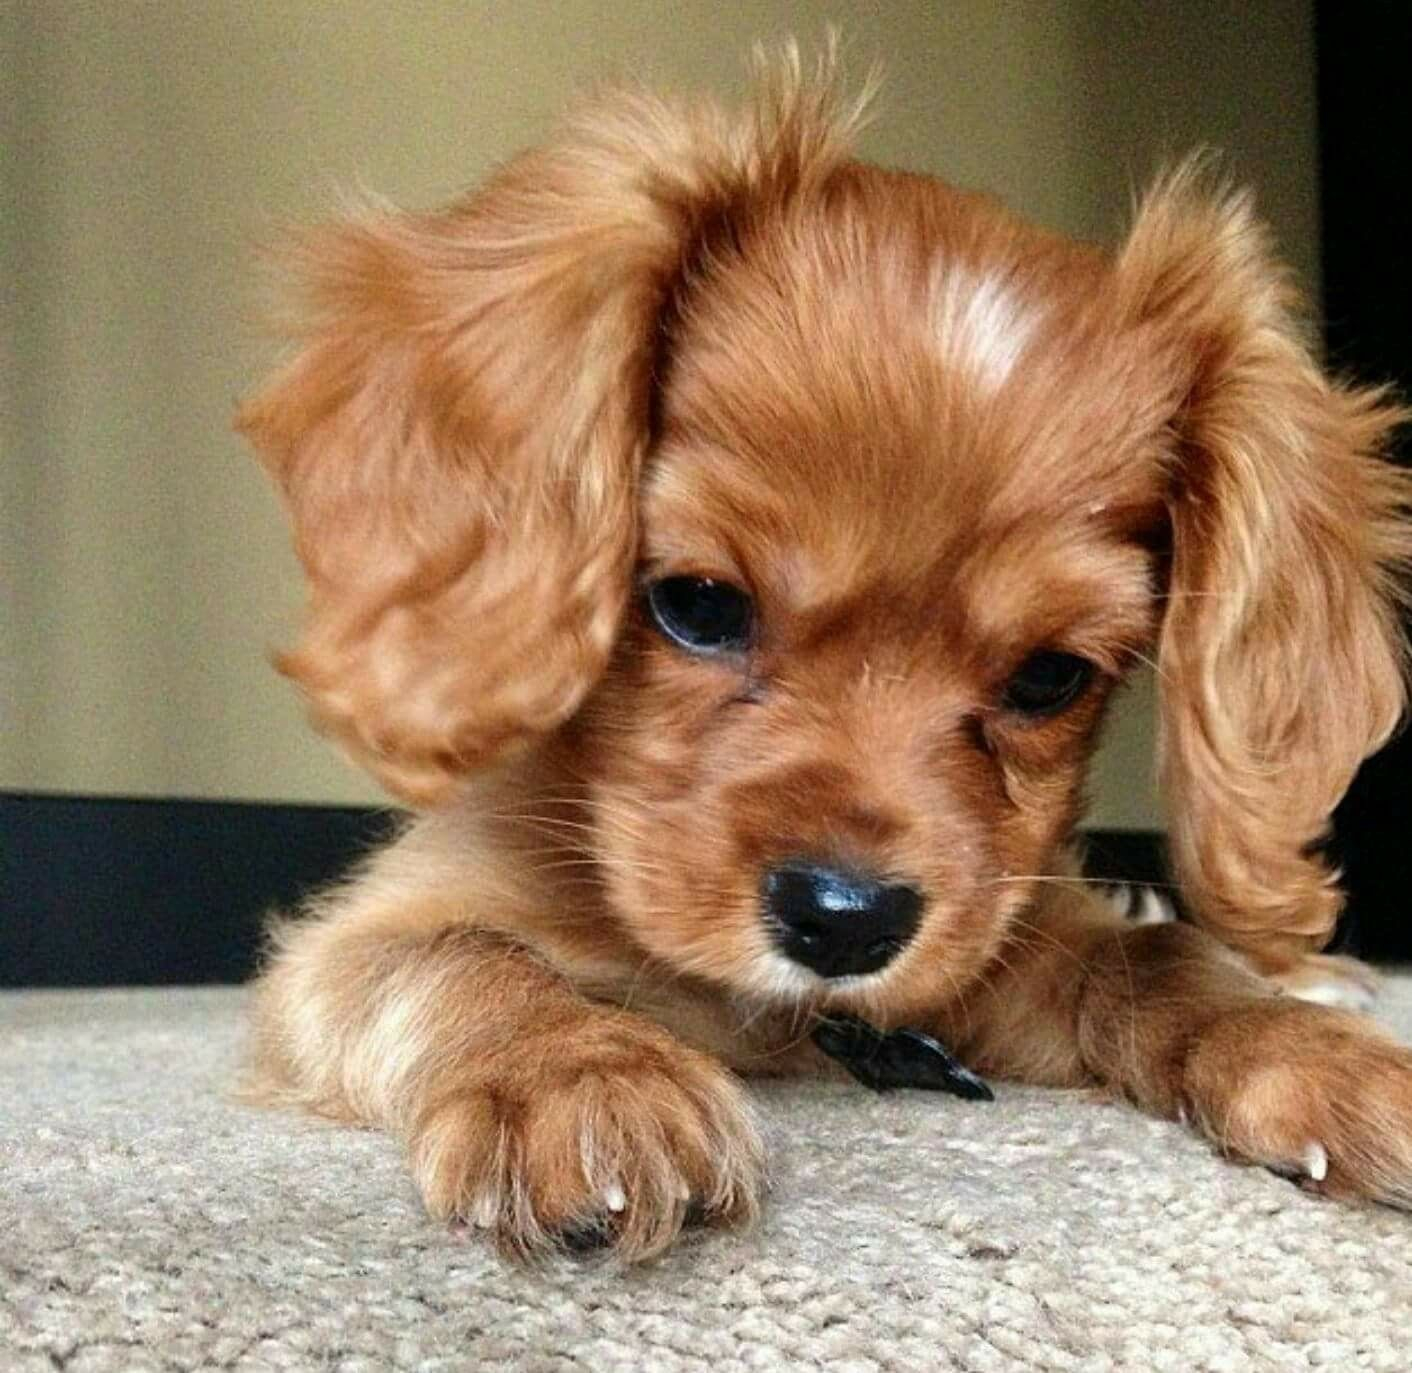 Pin by Imama on A Dose Of CUTEness Pets, Cute baby